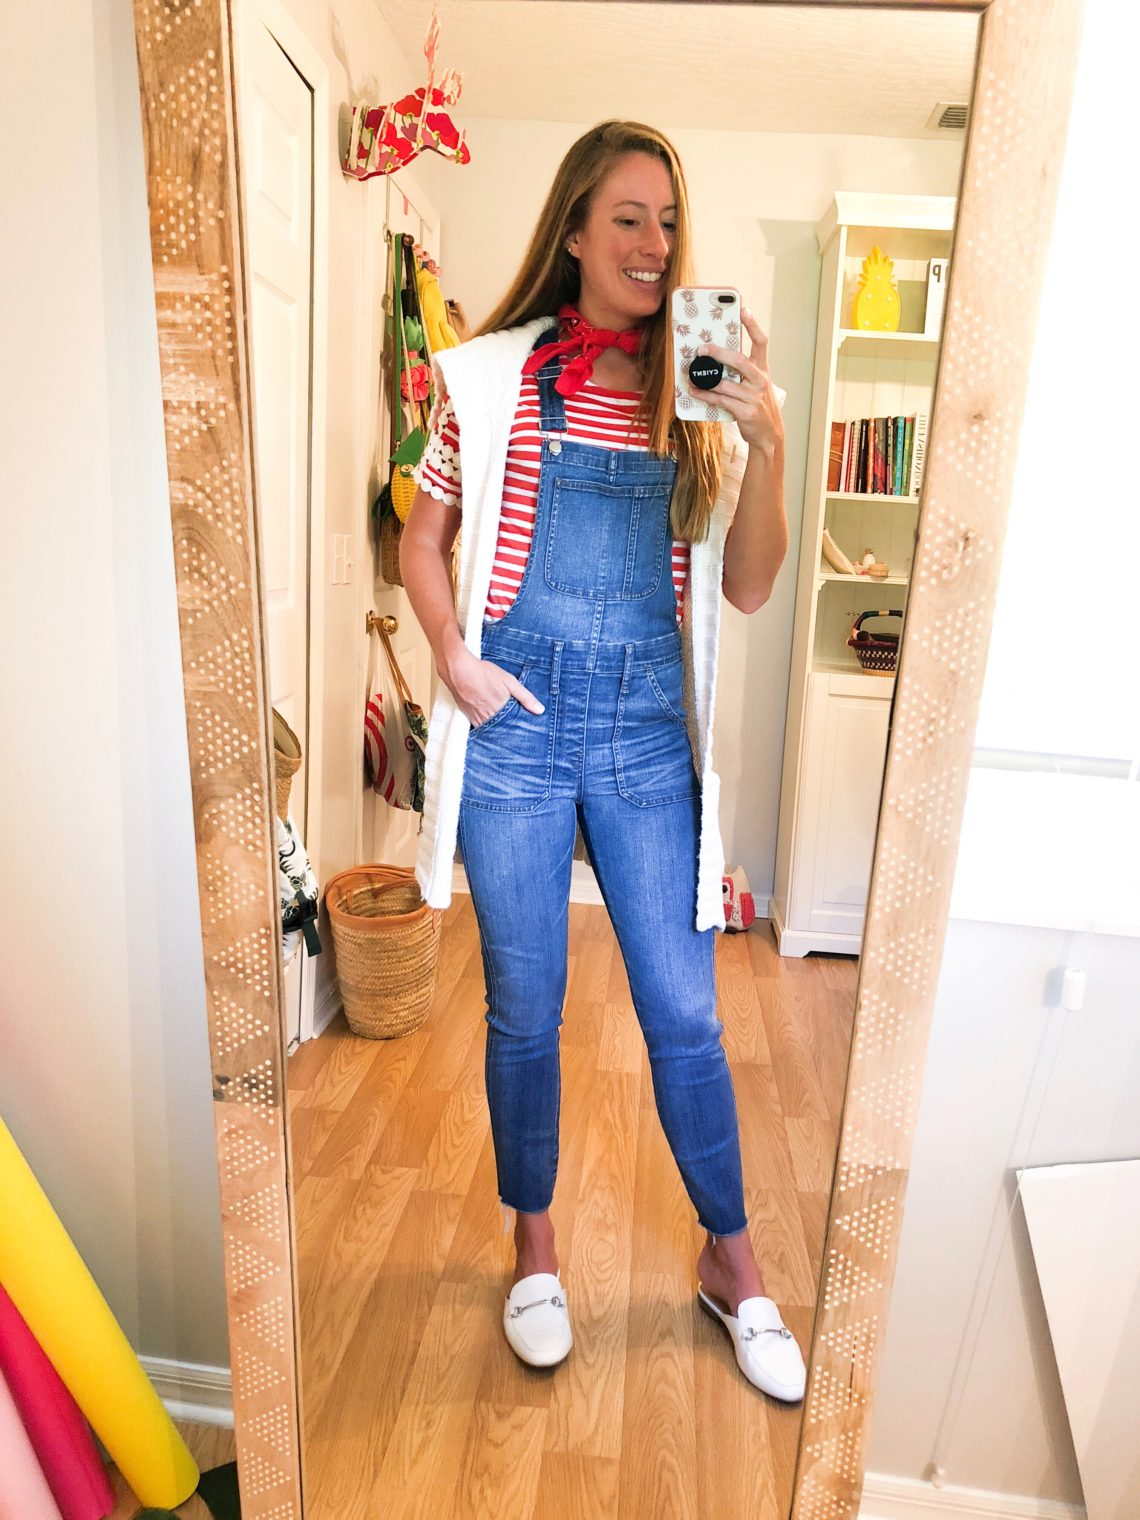 3 Ways to Style Overalls for Fall - Striped Top, Colored Sweater and a Blouse | Sunshine Style